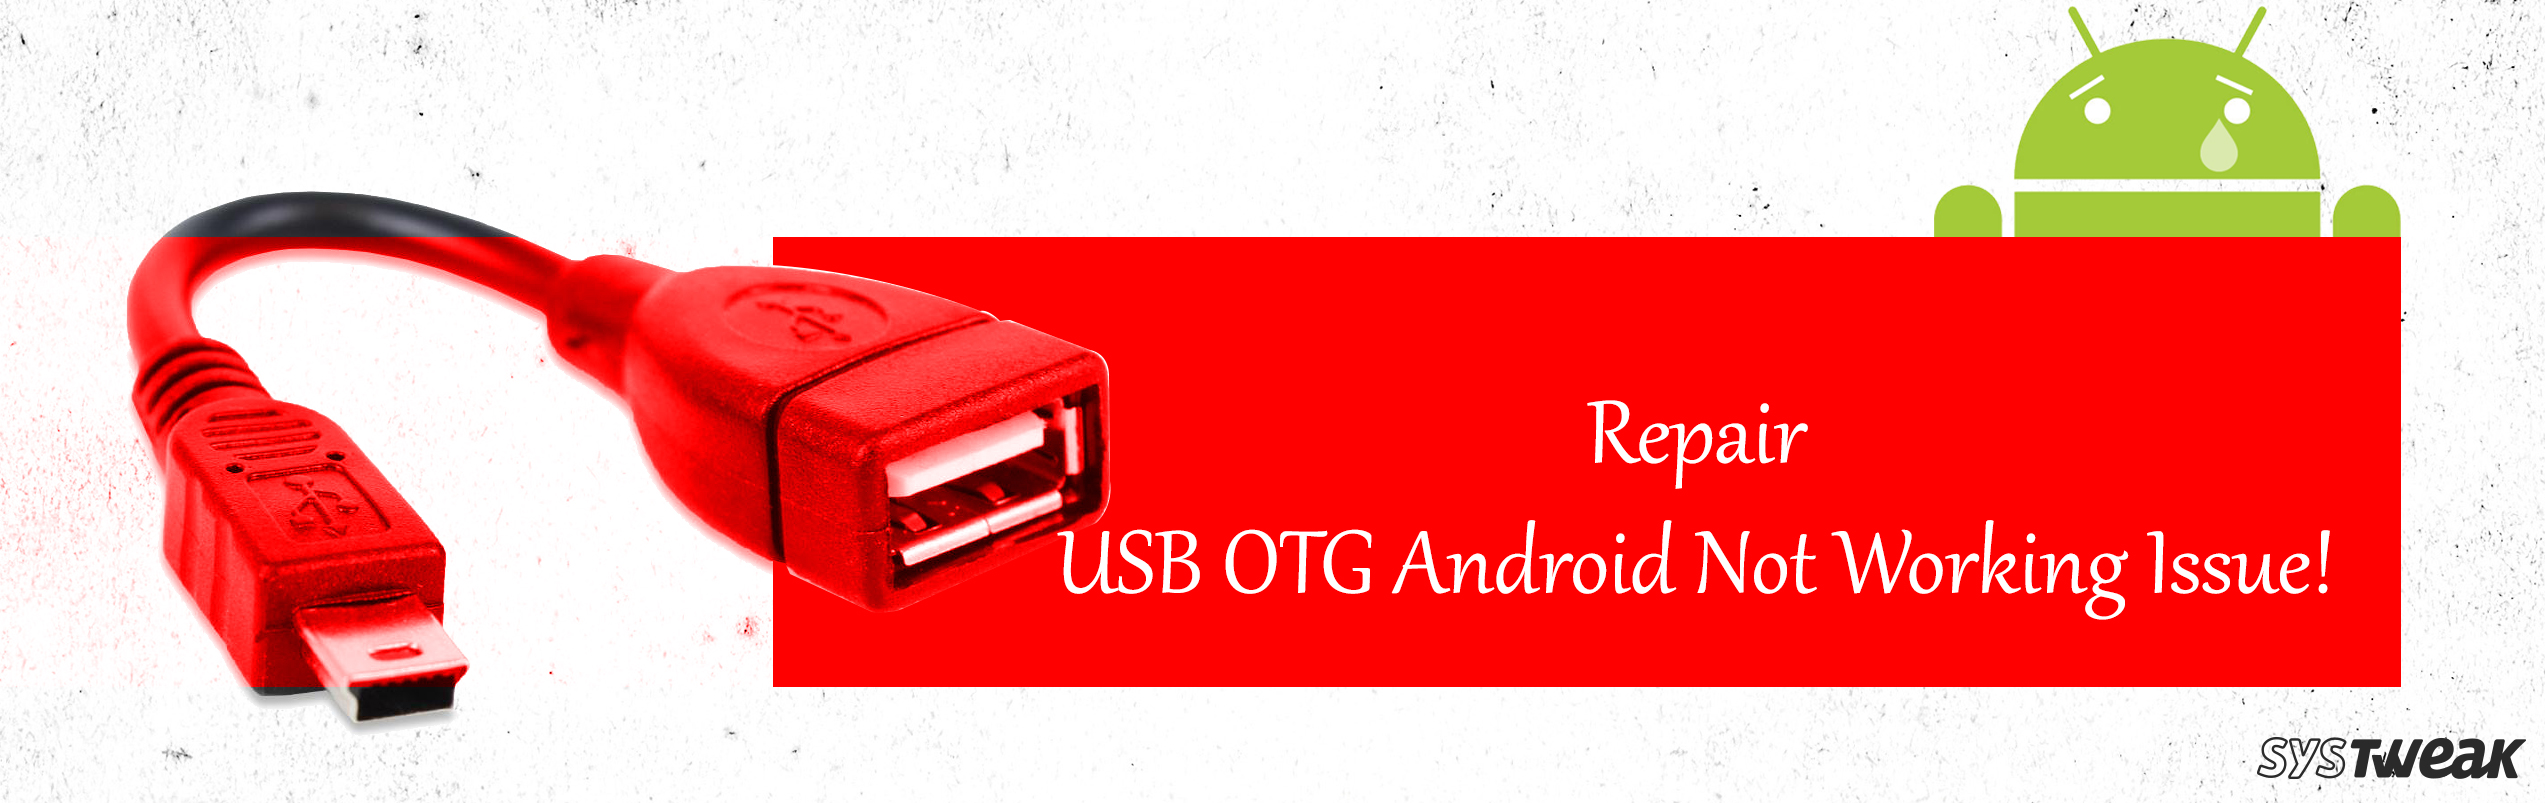 How To Fix USB OTG Android Not Working Issue